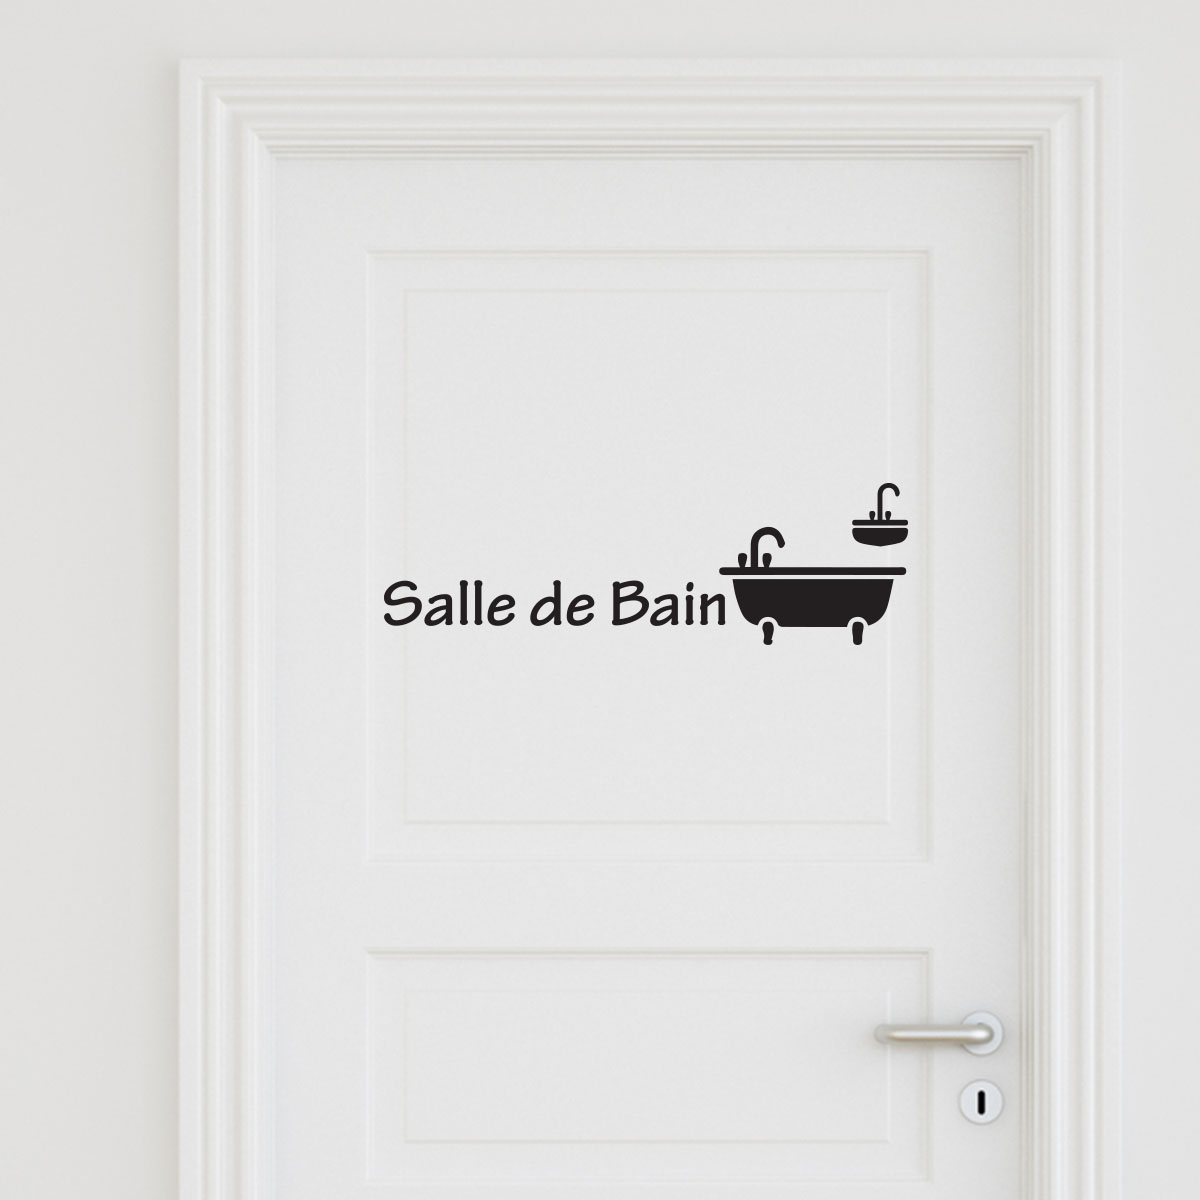 sticker porte salle de bain 3 stickers portes salle de. Black Bedroom Furniture Sets. Home Design Ideas